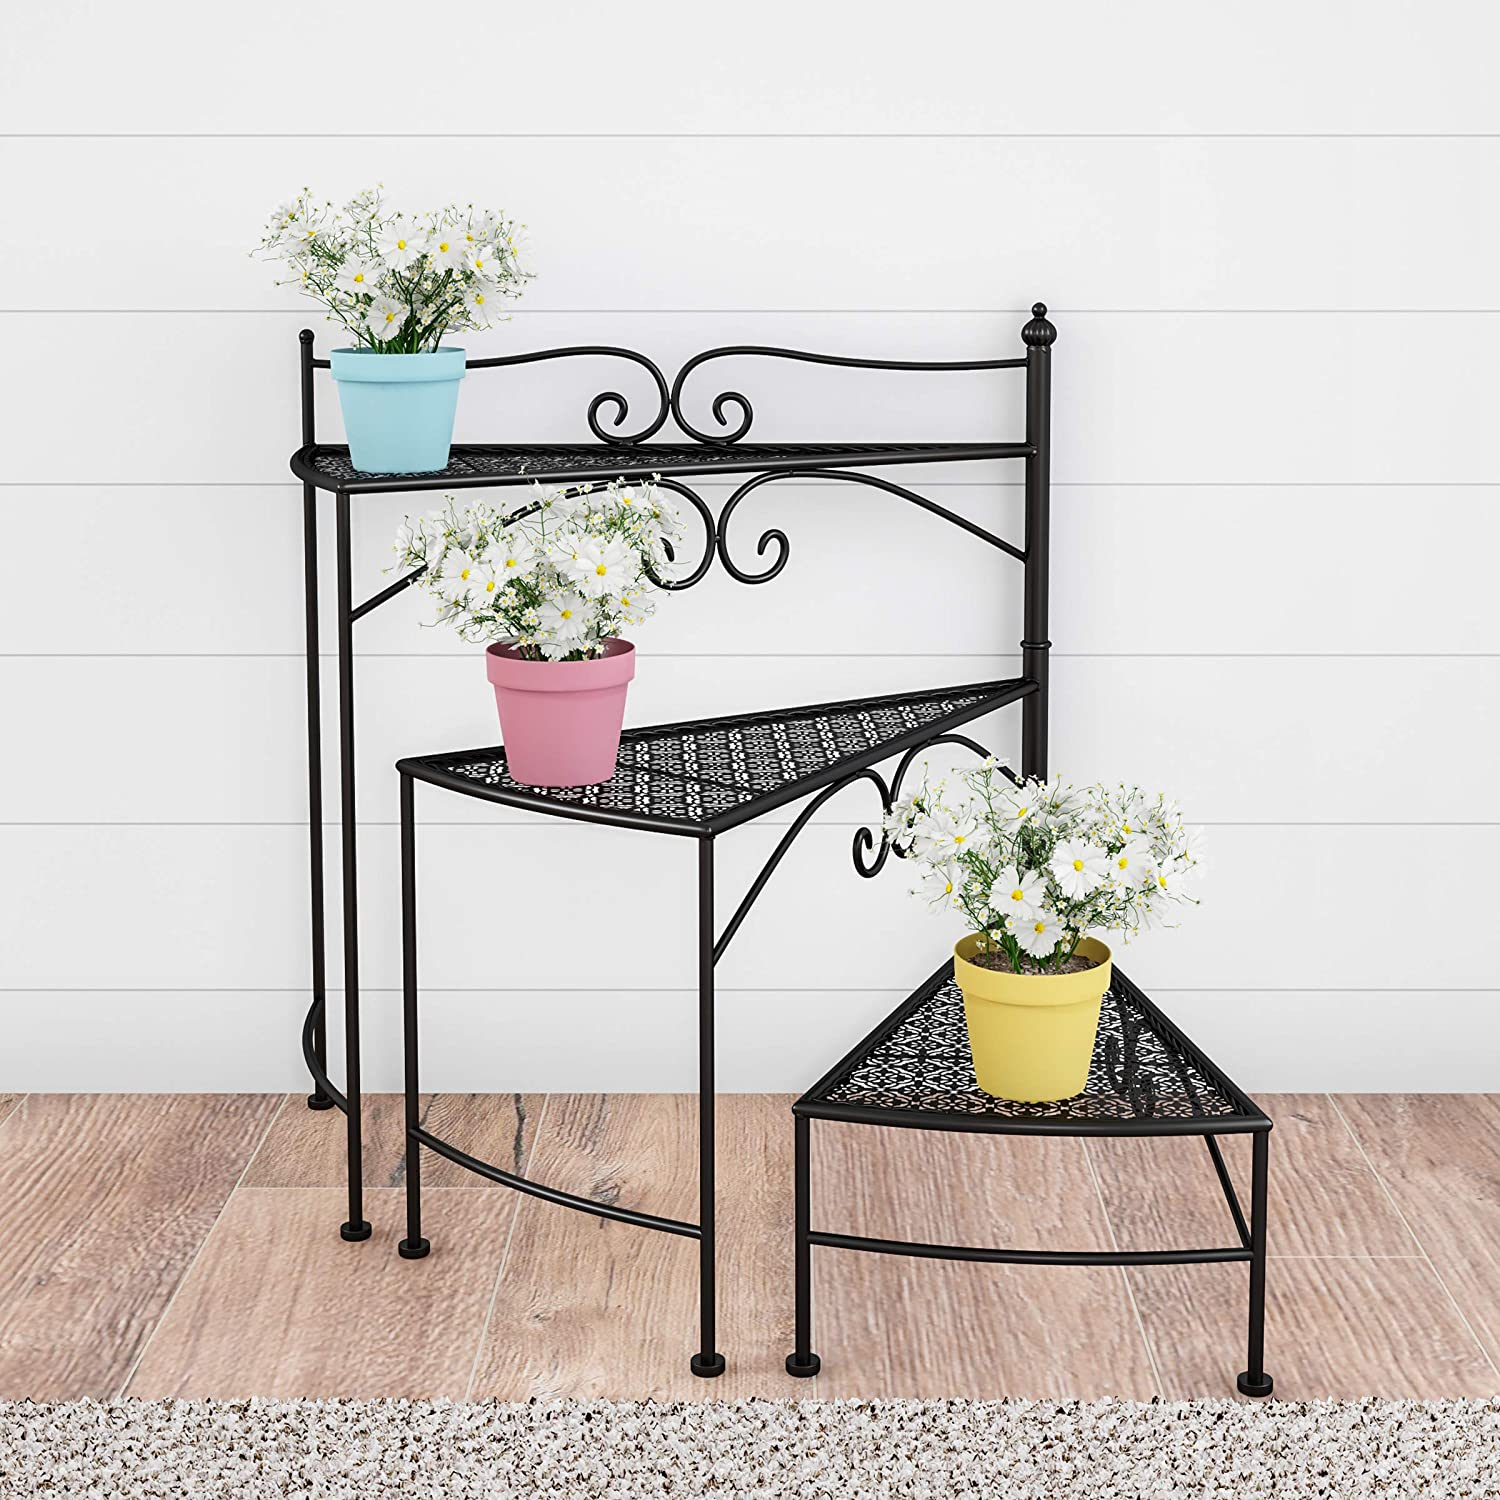 Pure Garden 50-LG1152 Plant Stand – 3-Tier Indoor or Outdoor Folding Spiral Stairs Wrought Iron Metal Home and Garden Display with Staggered Shelves (Black)